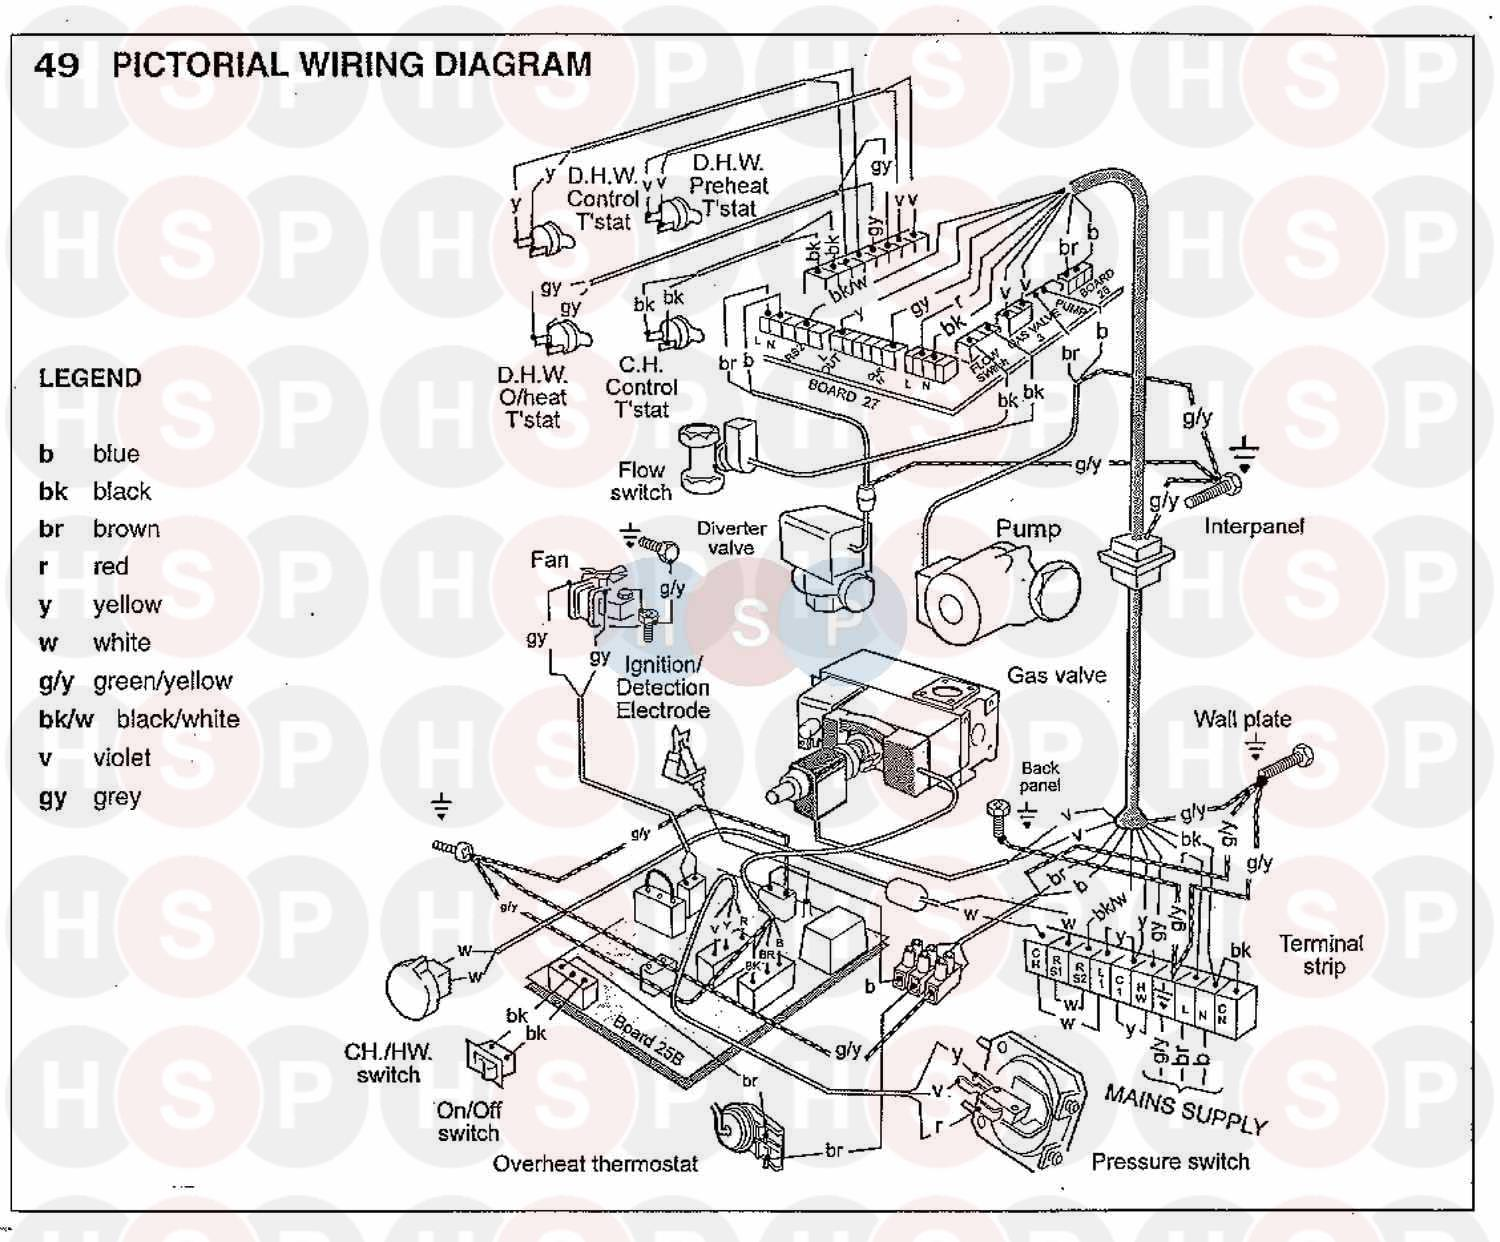 Ideal CLASSIC COMBI 280 Appliance Diagram (Wiring Diagram